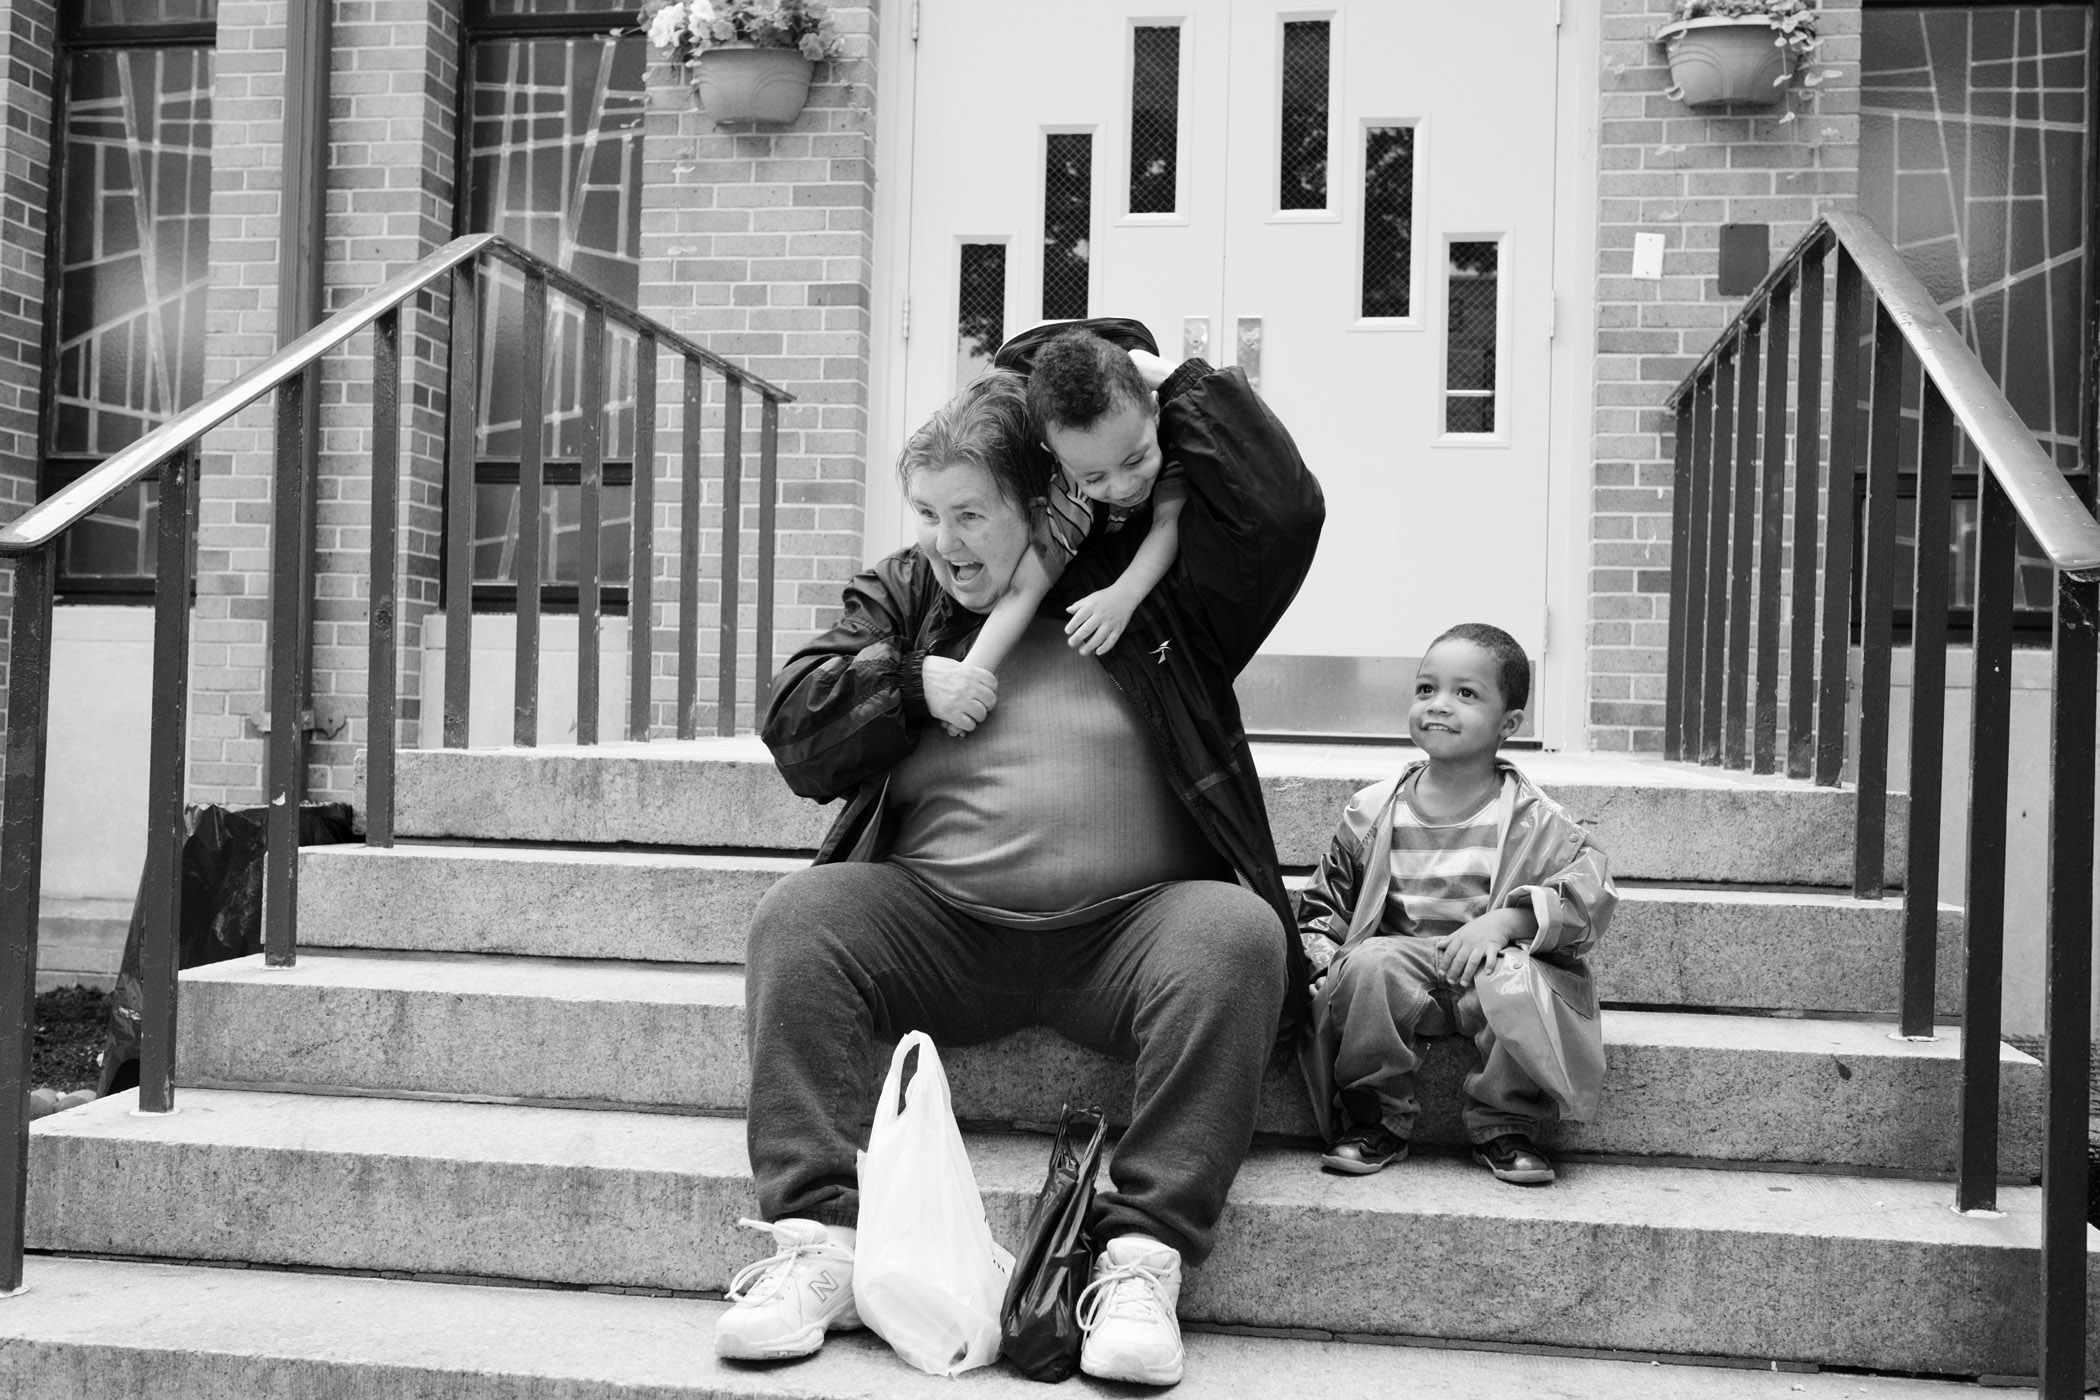 Carol, 65, who served 35 years, one year after her release with Darjay and her honorary grandchild Cecil (right), both almost three years old. Long Island City, NY (2014)